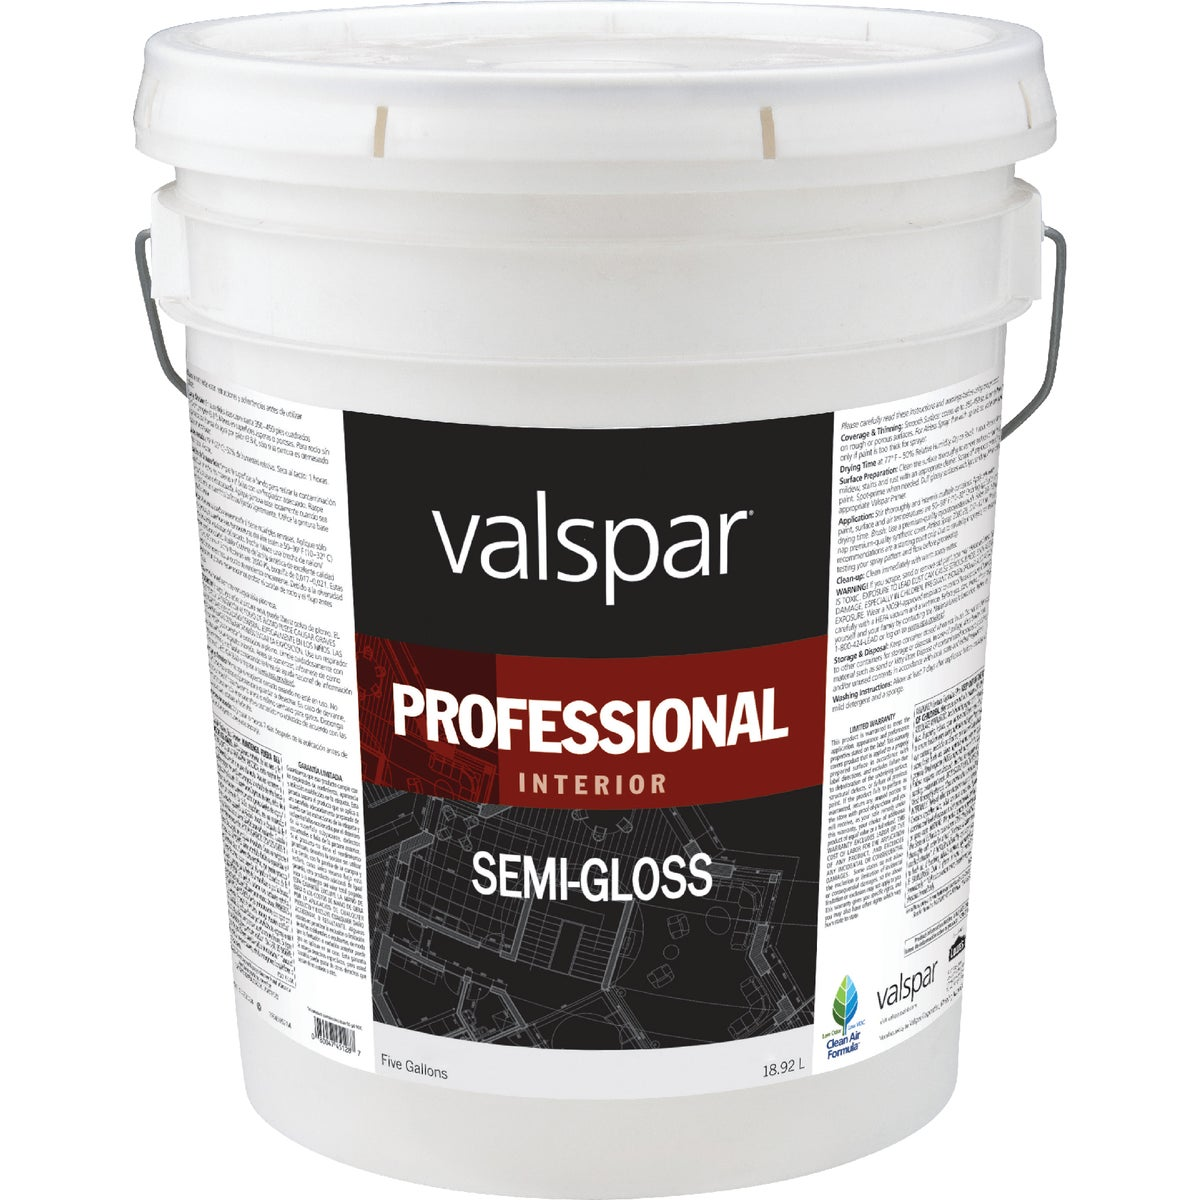 INT S/G MED BASE PAINT - 045.0011912.008 by Valspar Corp